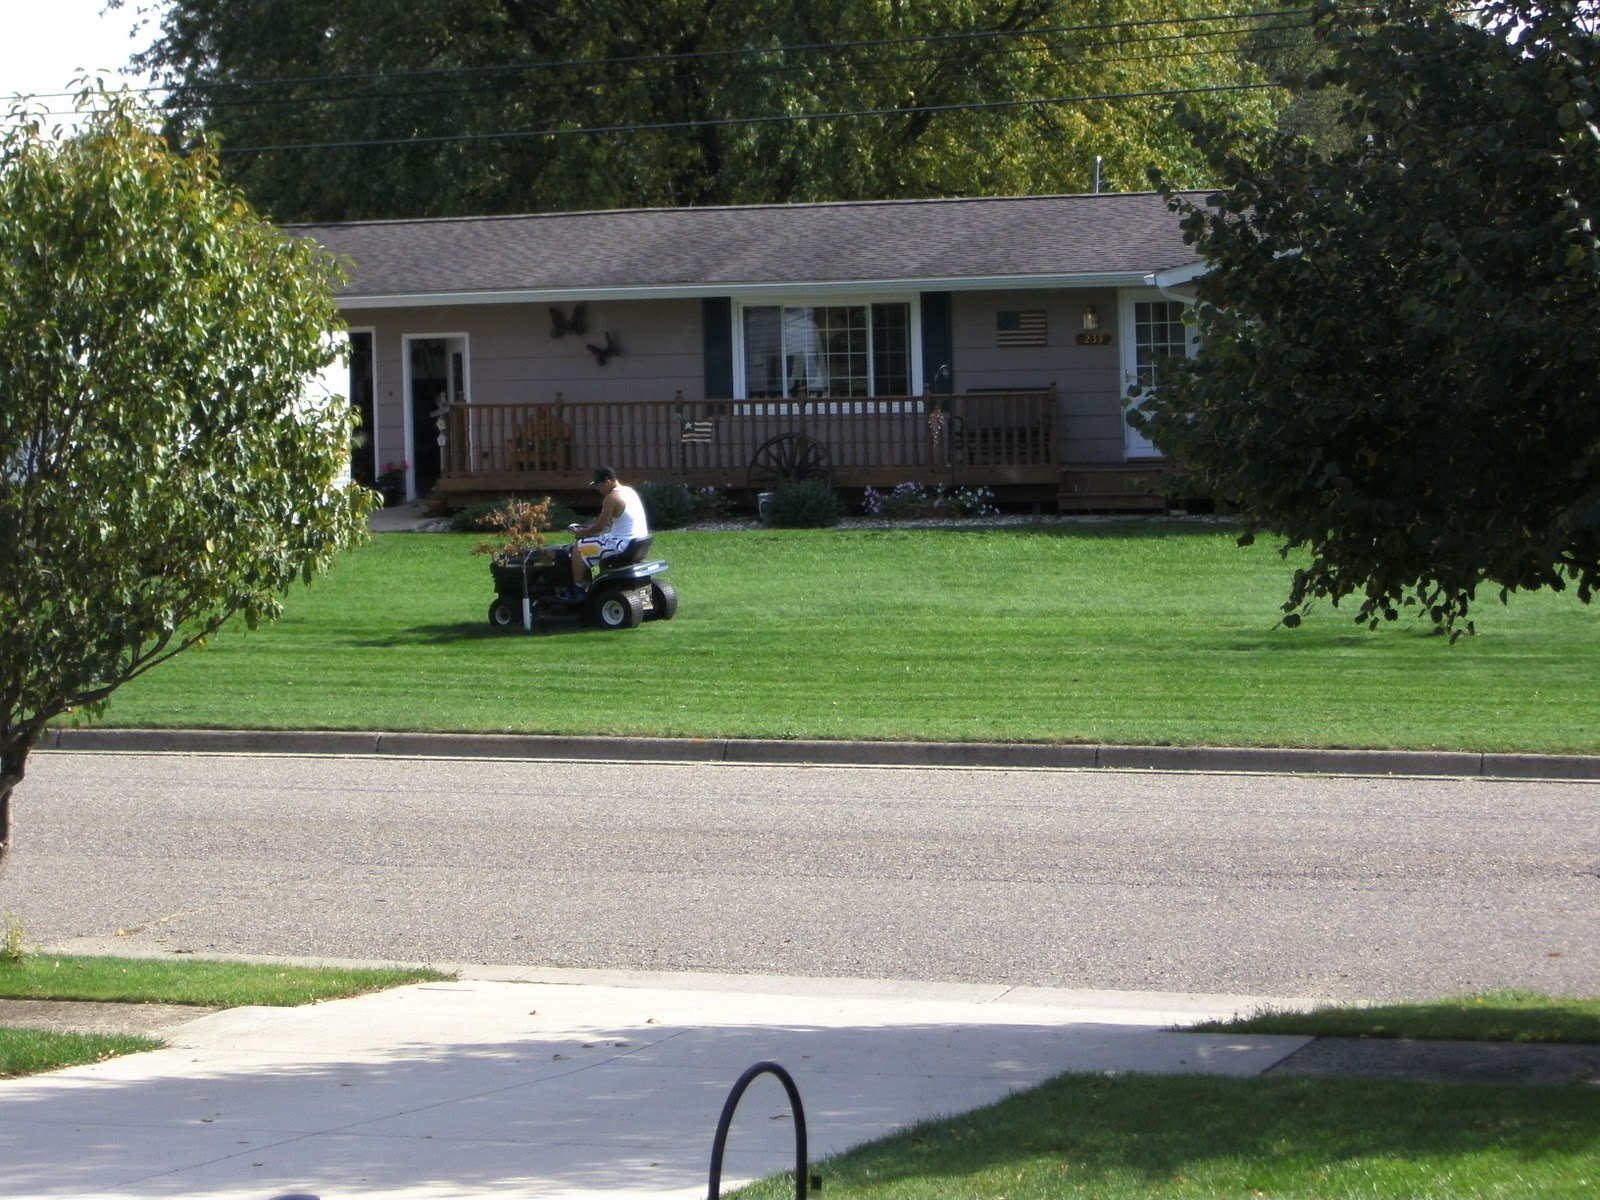 nick s photo essay small town life  a young man mows carefully around a small tree at his home in dexter during a hot day many of the yards in the town are quite spacious